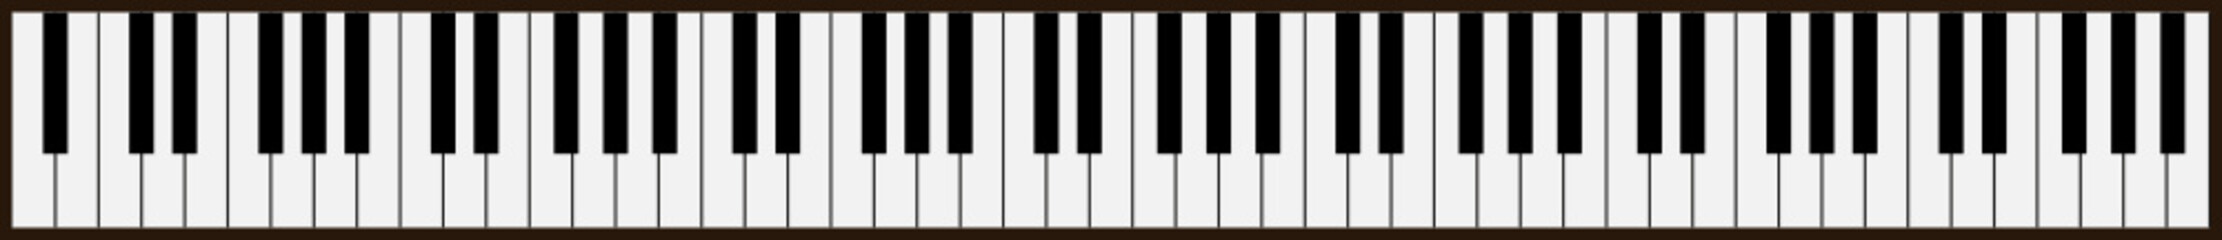 piano keys - vector